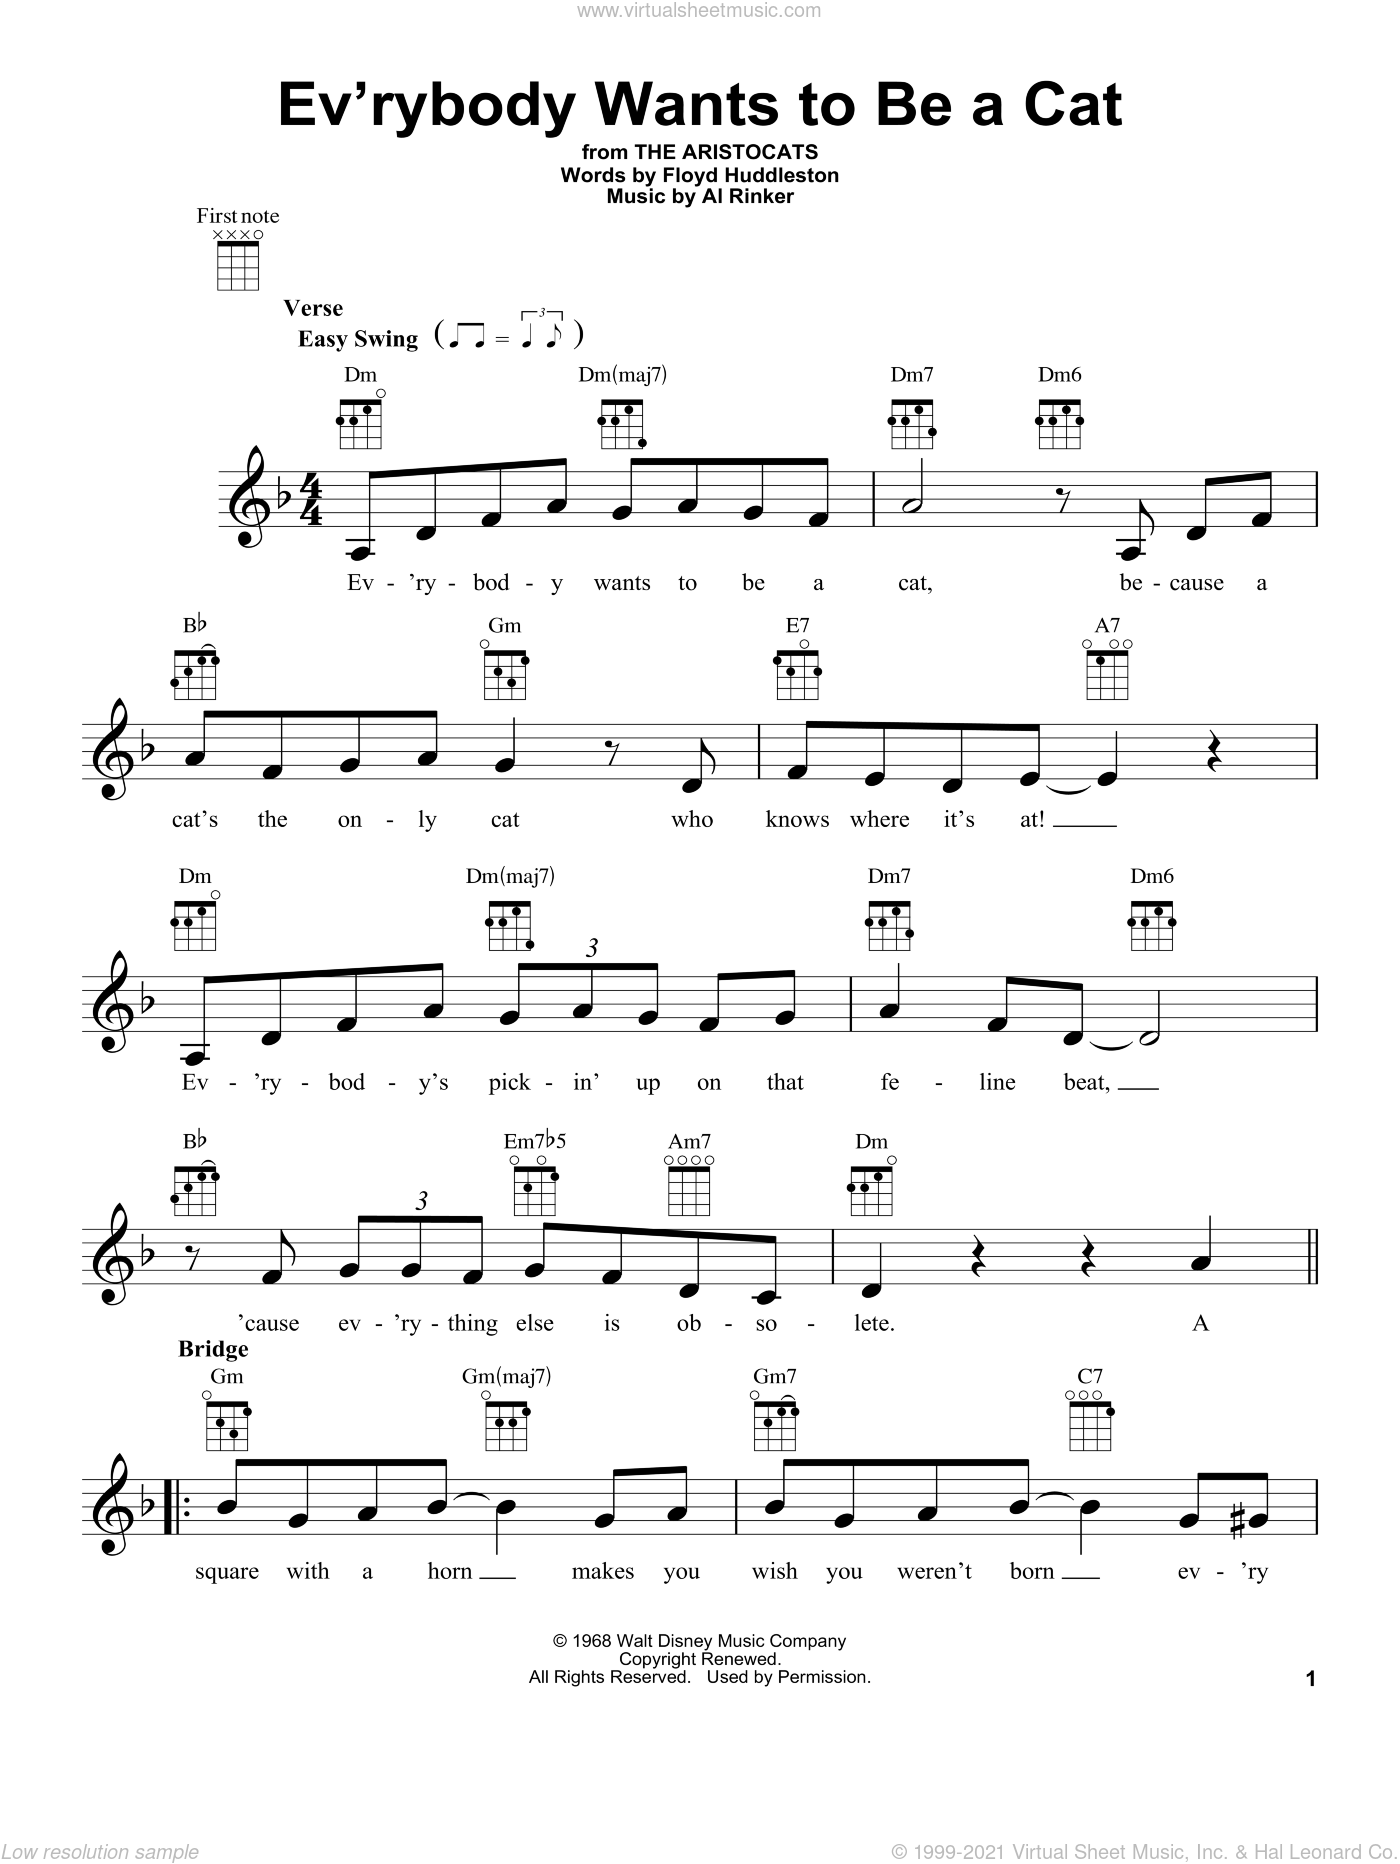 Ev'rybody Wants To Be A Cat sheet music for ukulele by Floyd Huddleston and Al Rinker. Score Image Preview.